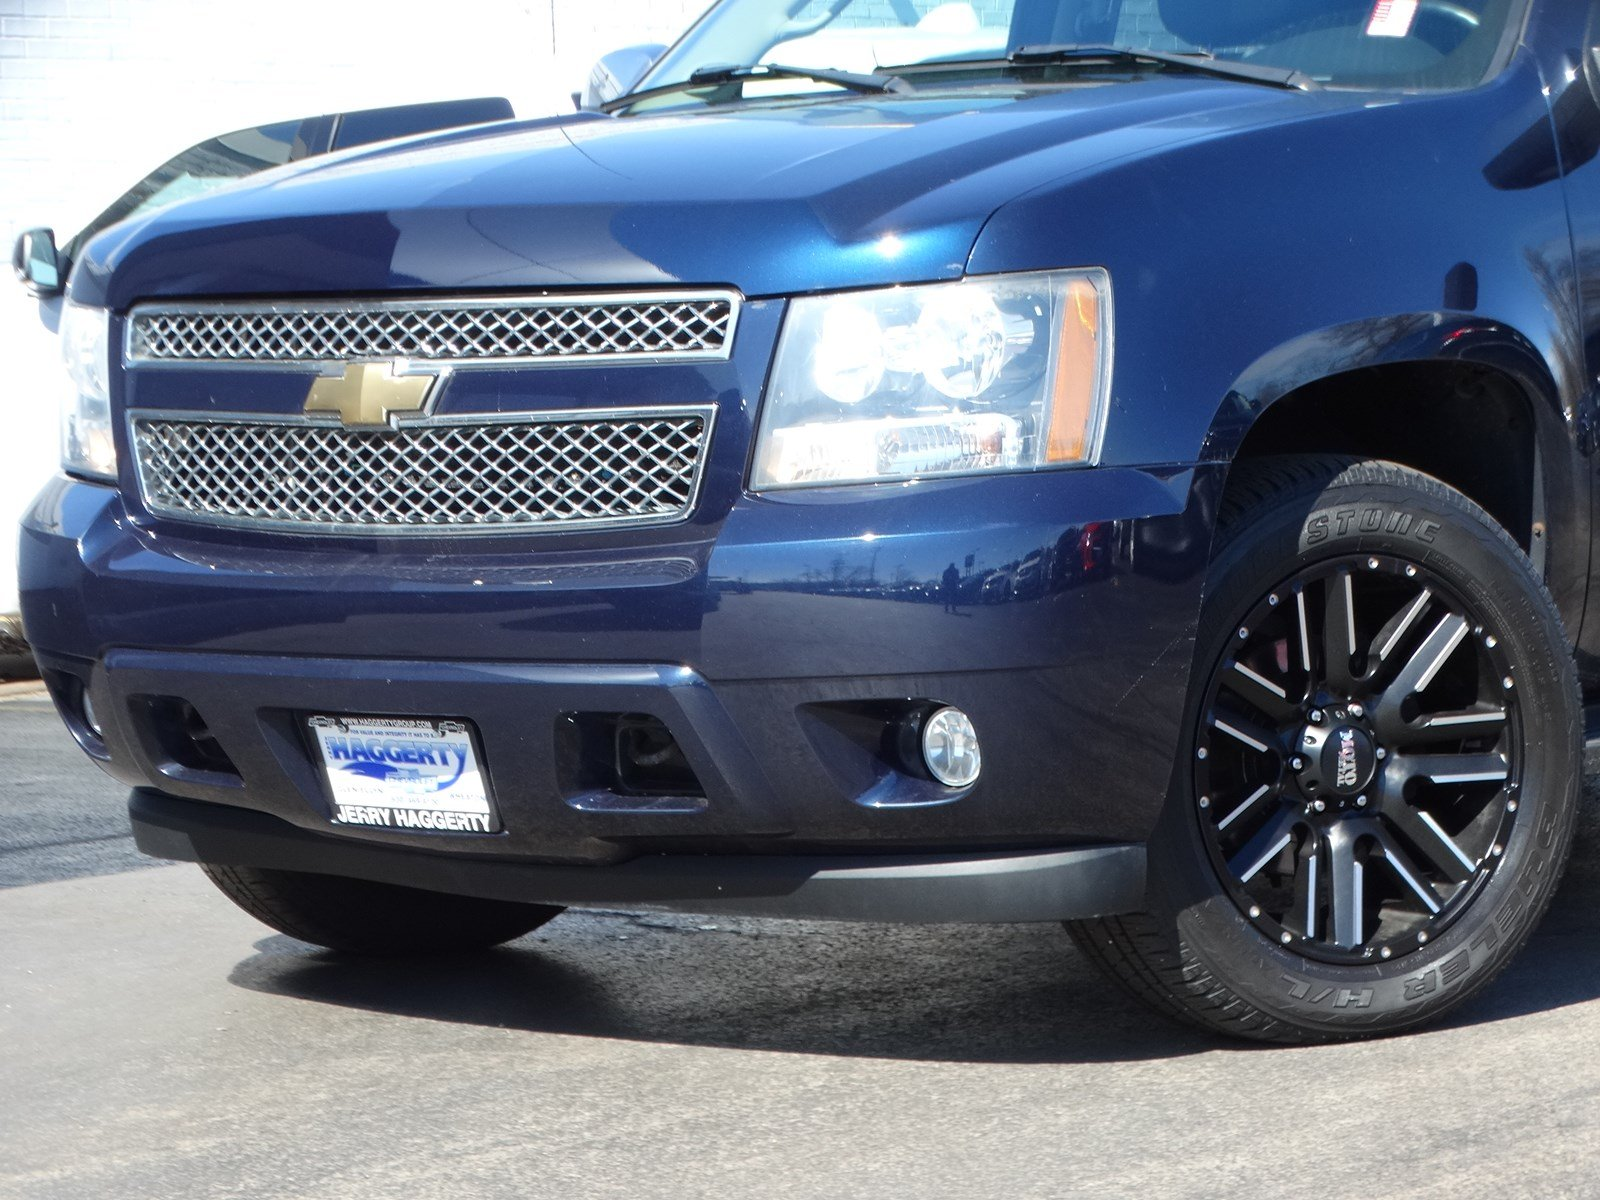 Pre-Owned 2007 Chevrolet Avalanche LTZ